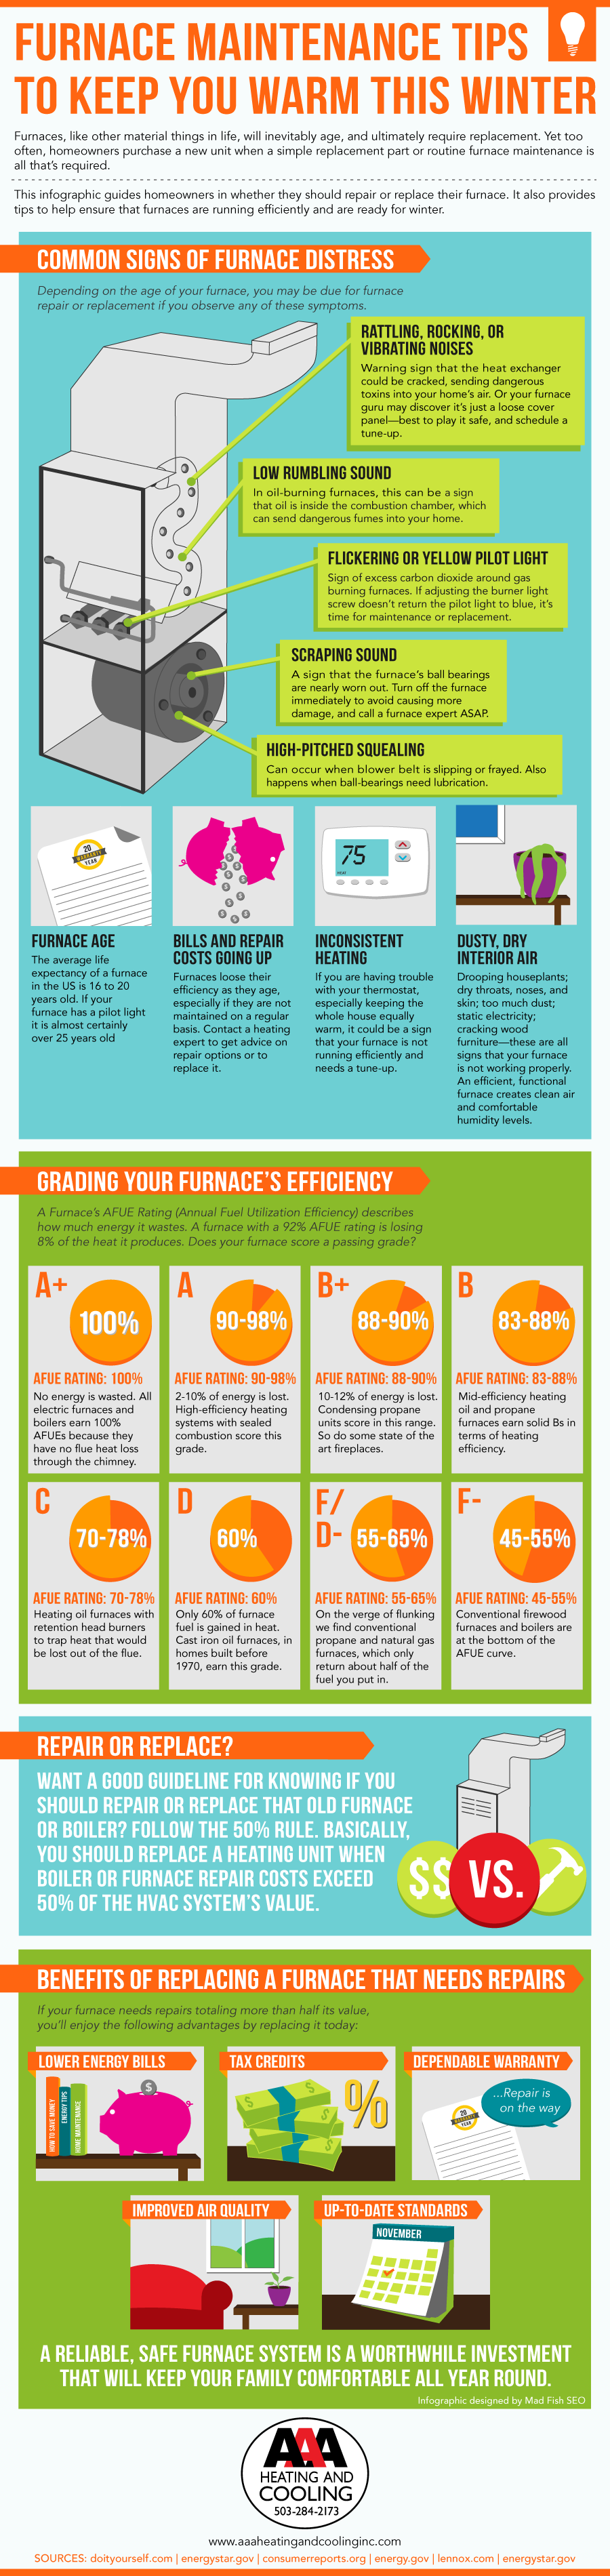 Furnace-Maintenance-Infographic